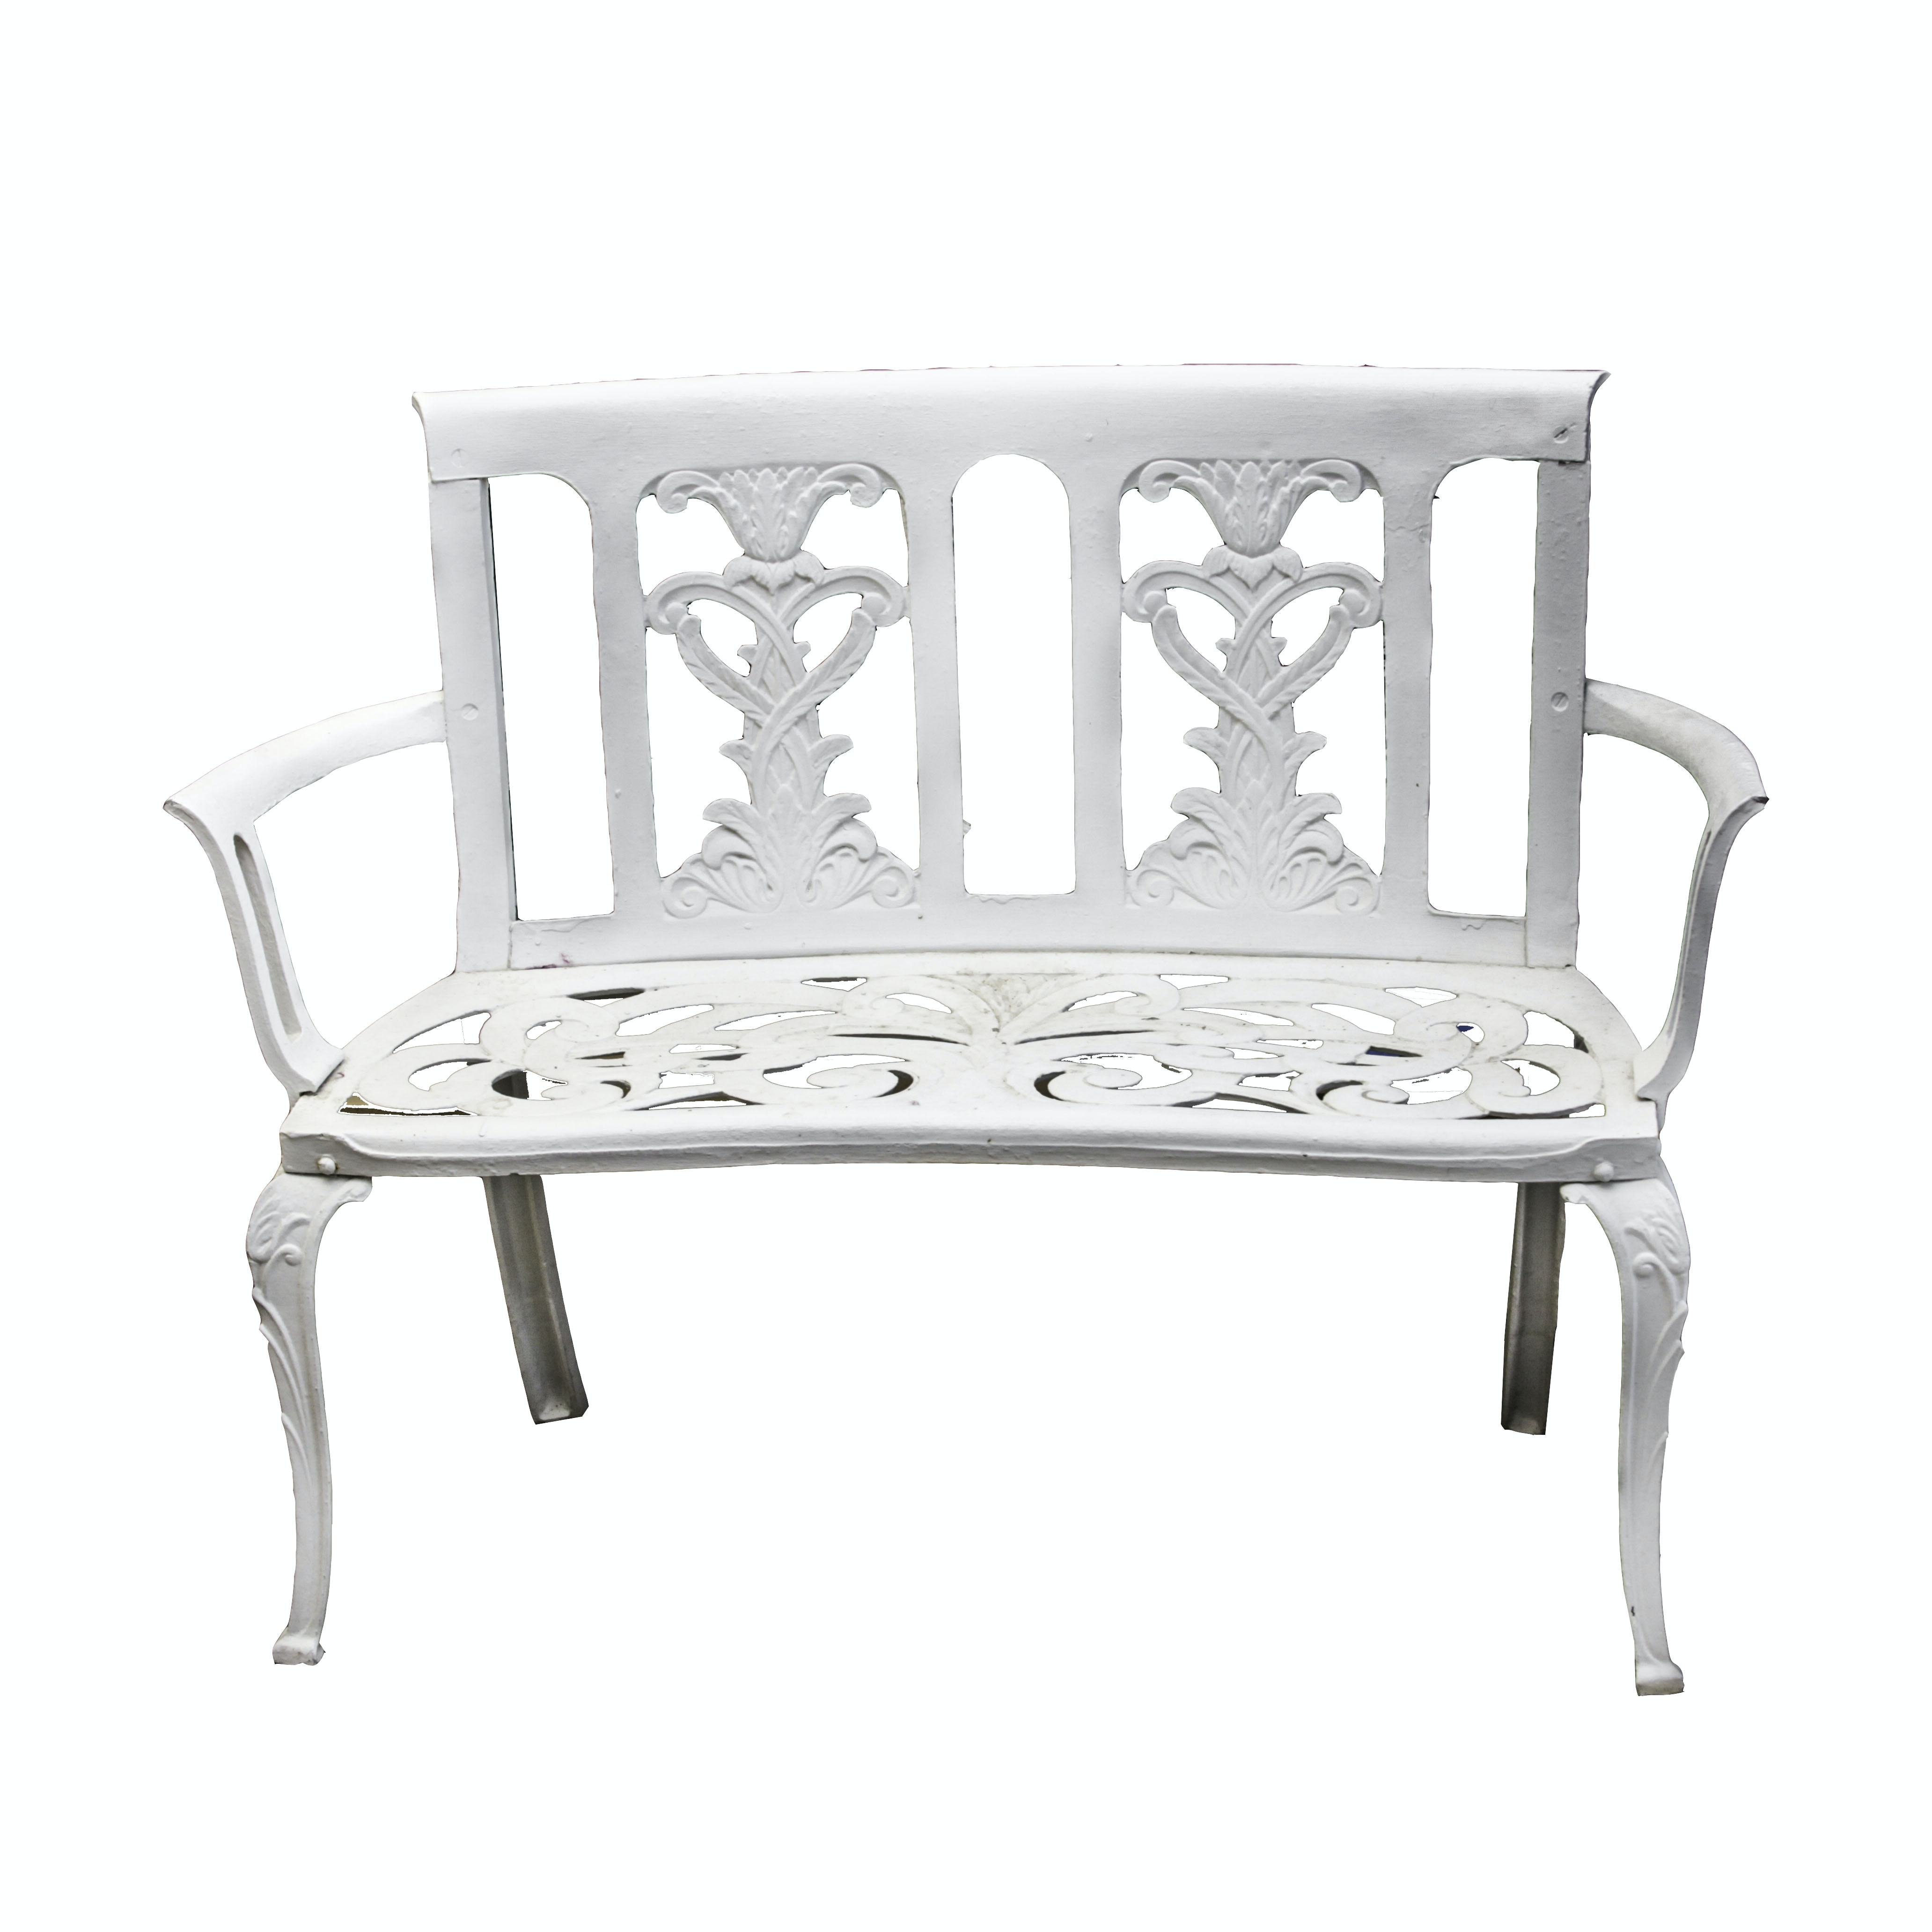 Cast Metal Garden Bench